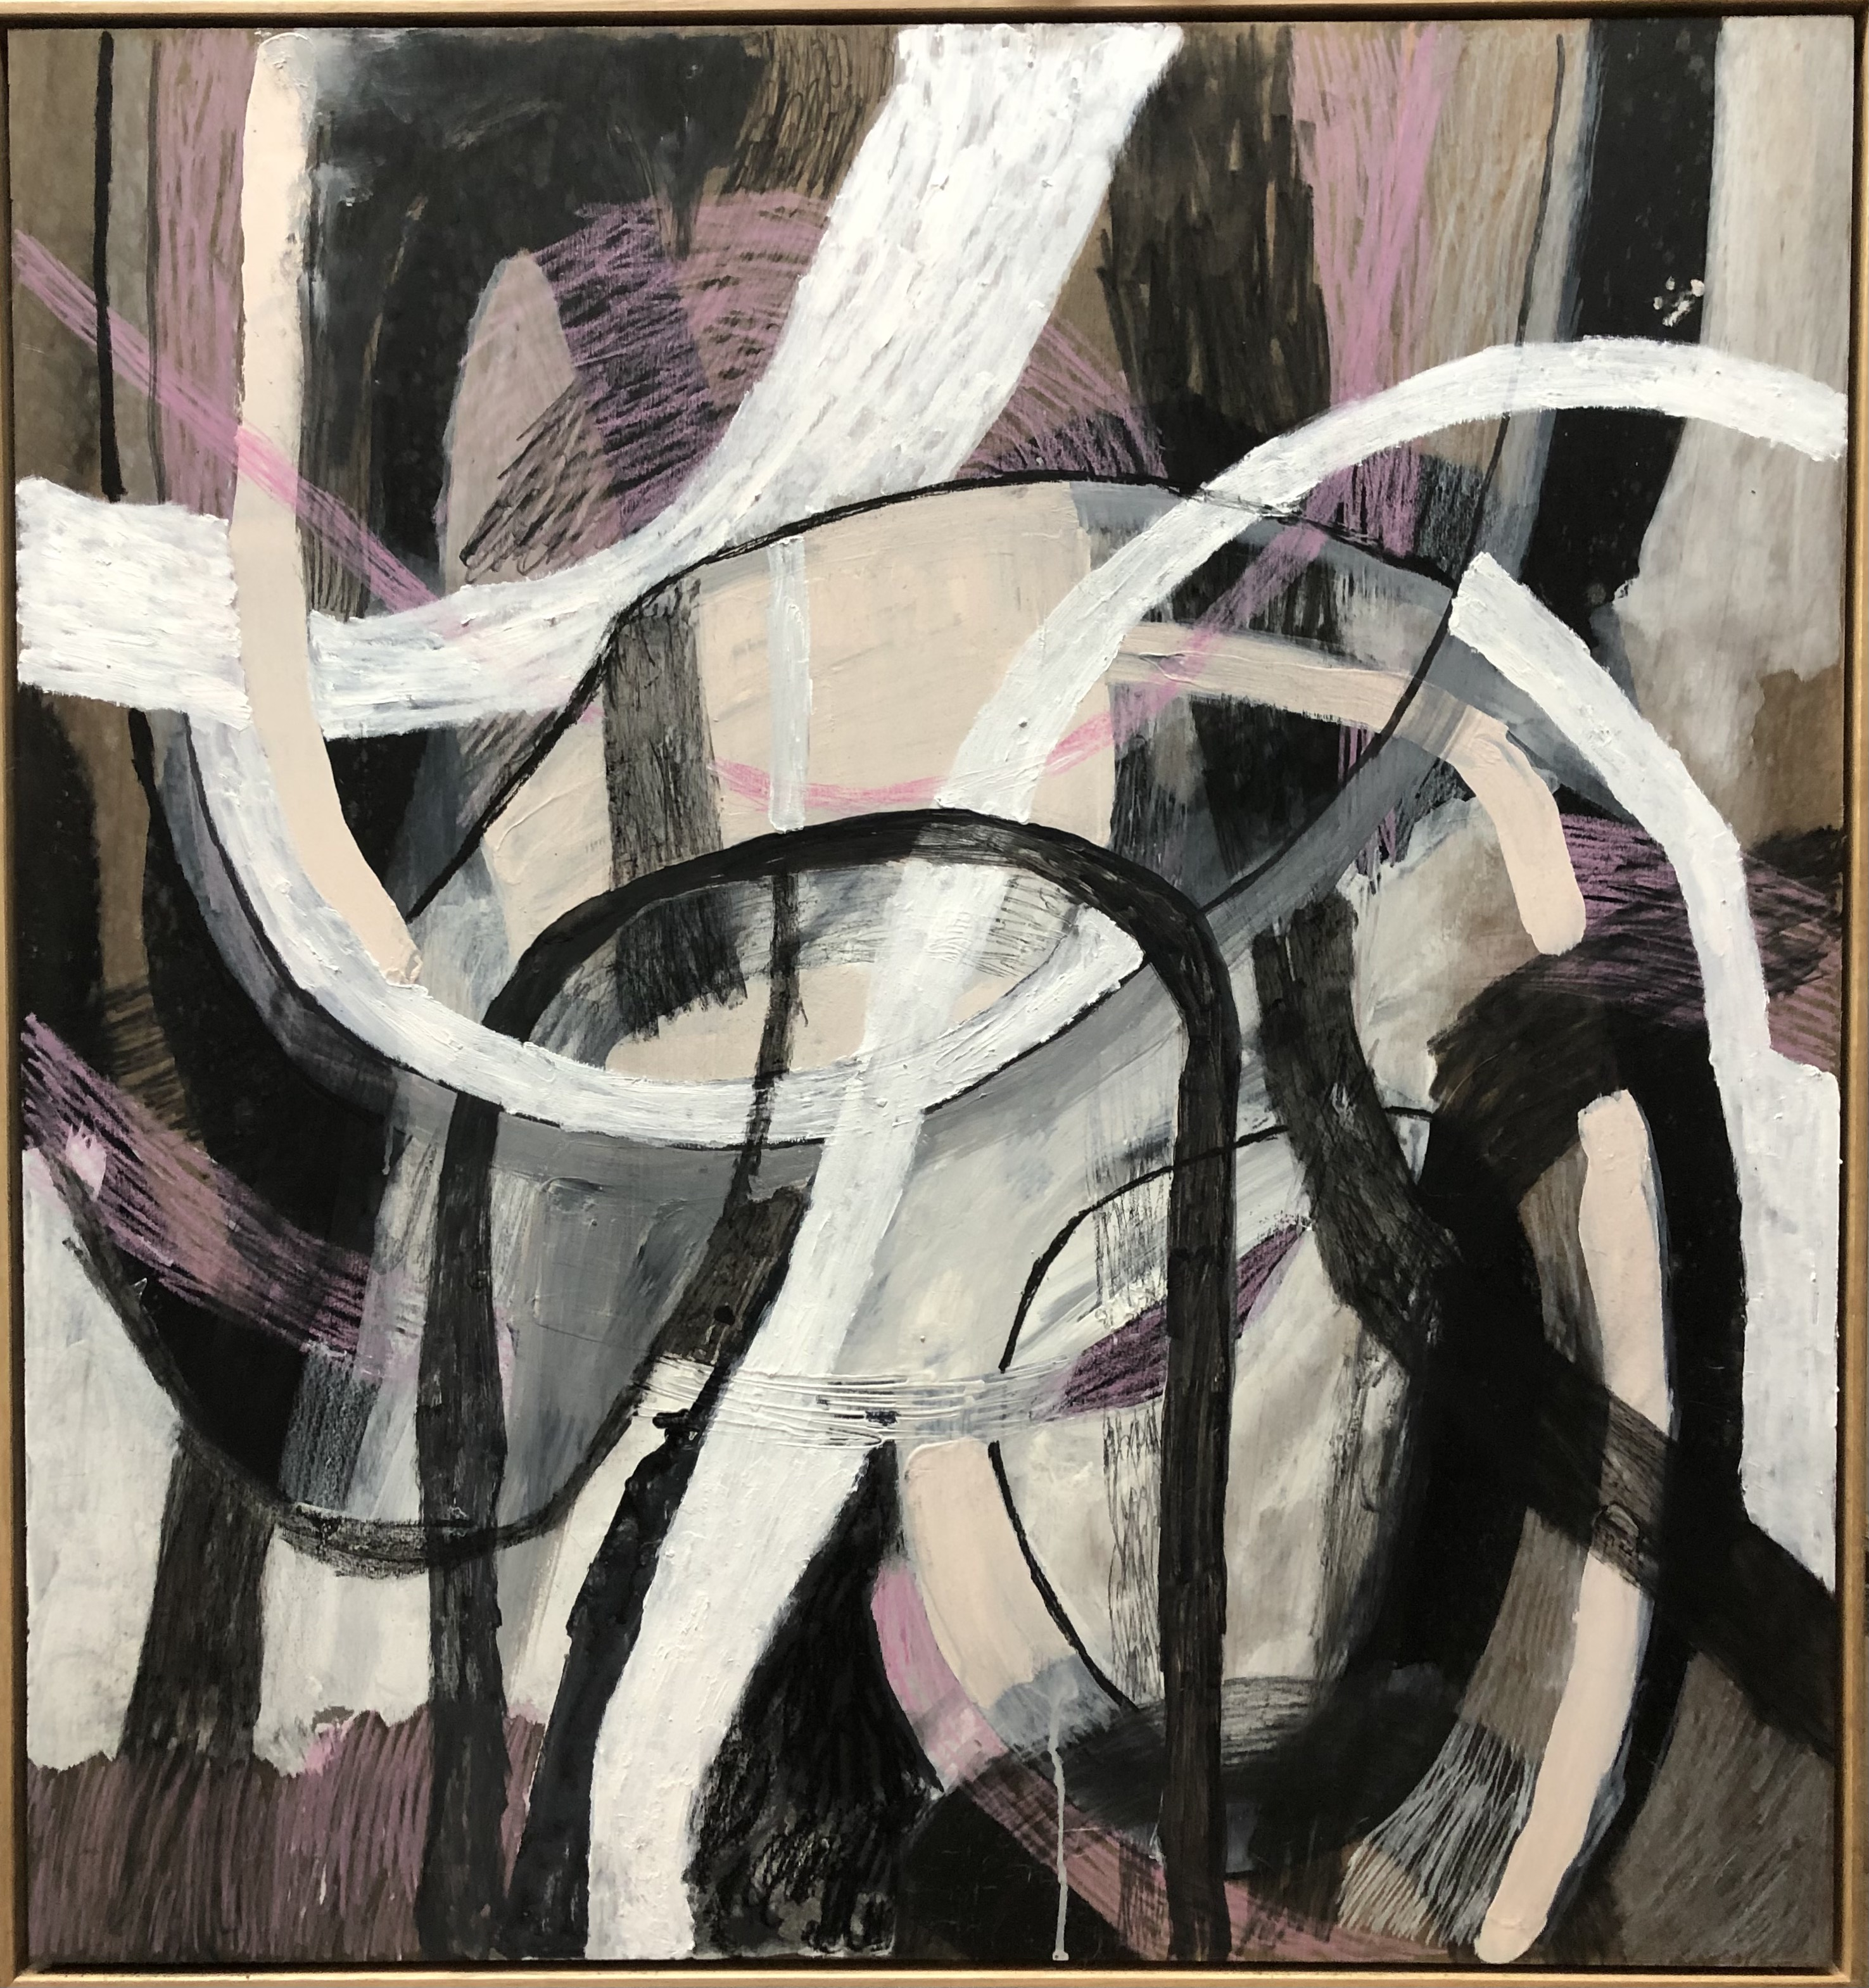 ahn-wells-somewhere-between-yours-and-mine-2021-mixed-media-on-board-87-x-82cm-framed